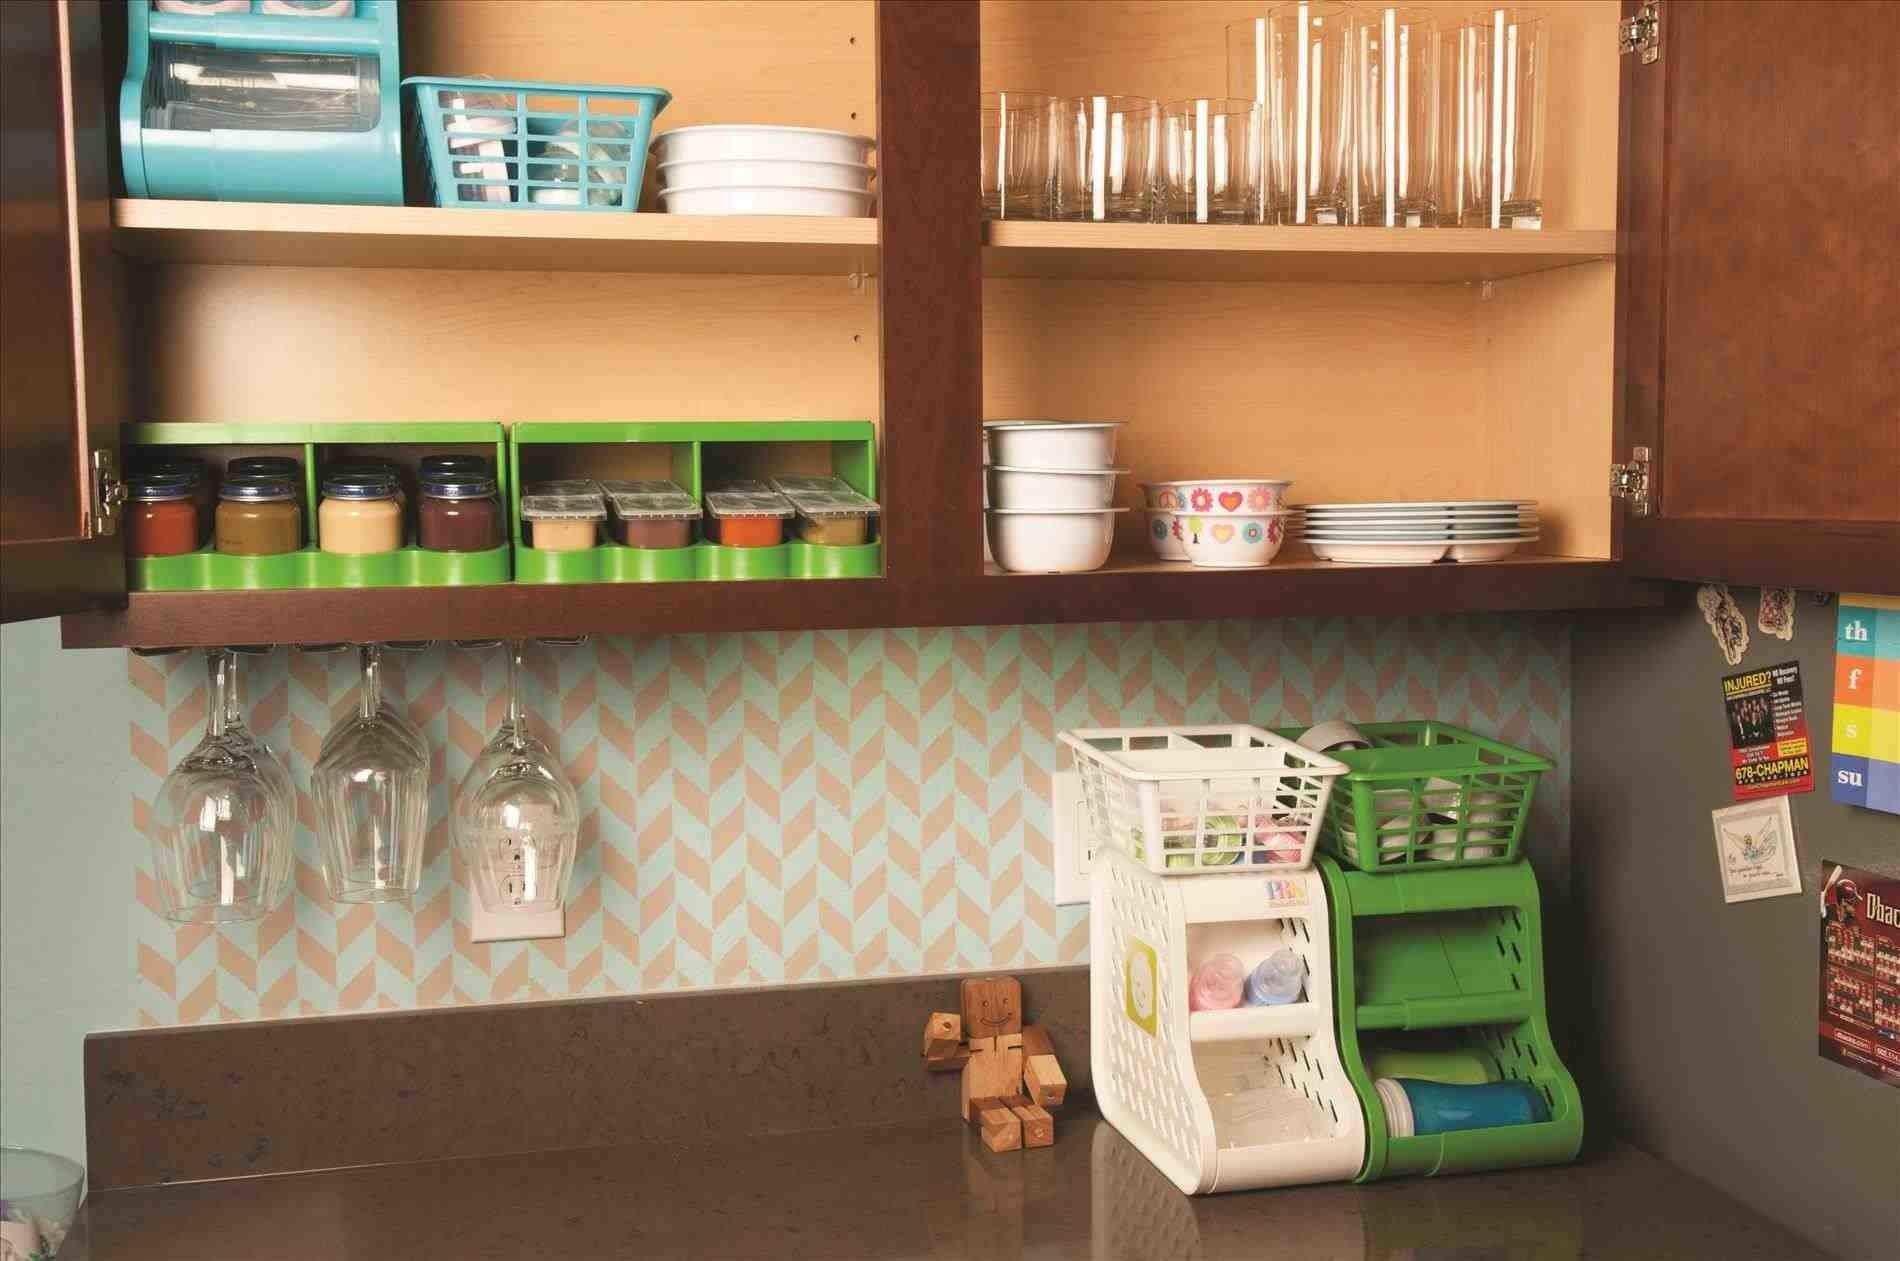 Spice Pull Out Rack Shelves Narrow Cabinet Diy Food